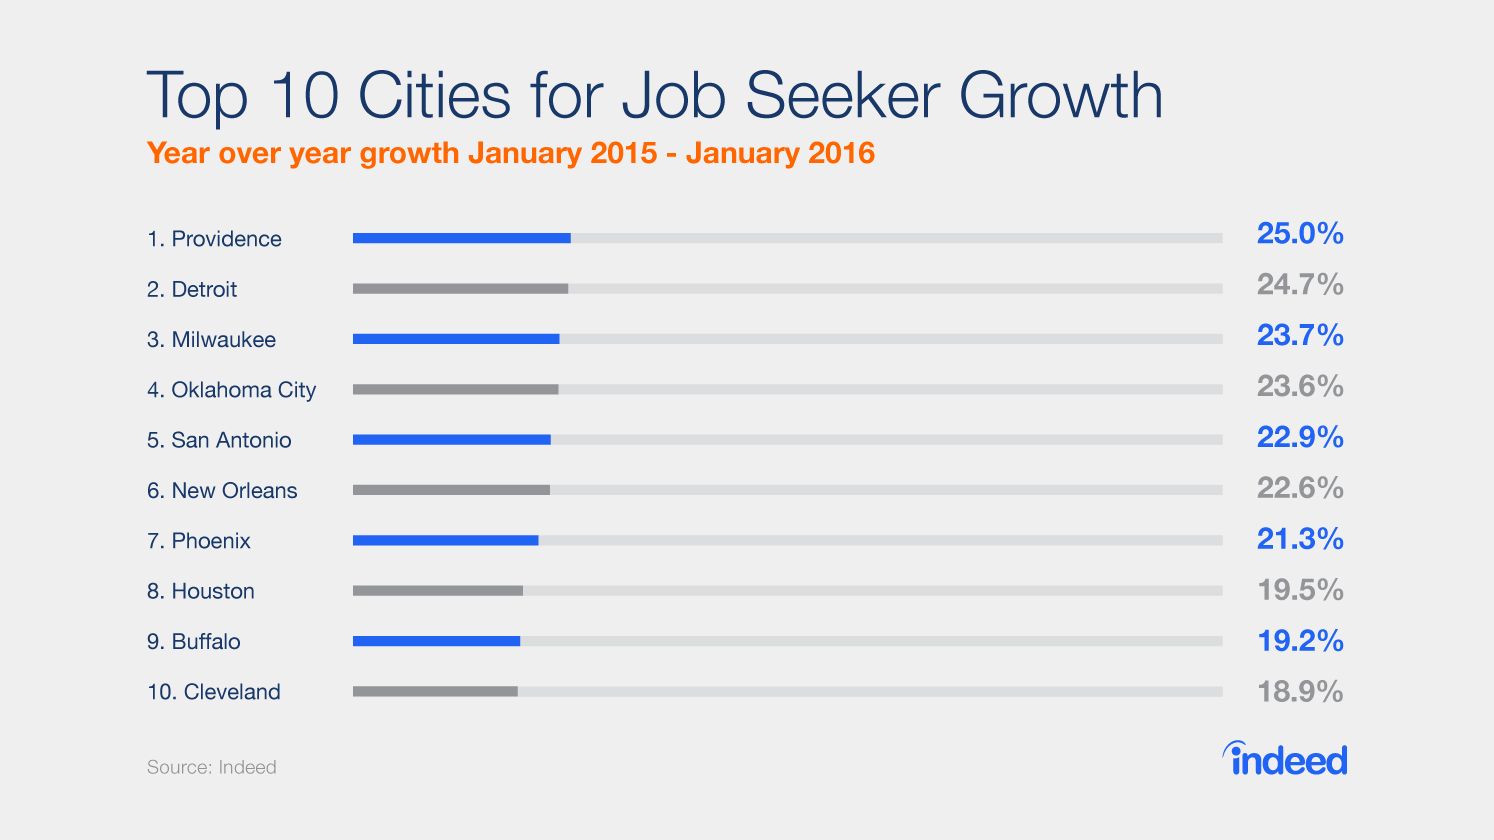 Job search increased the most in these ten cities.